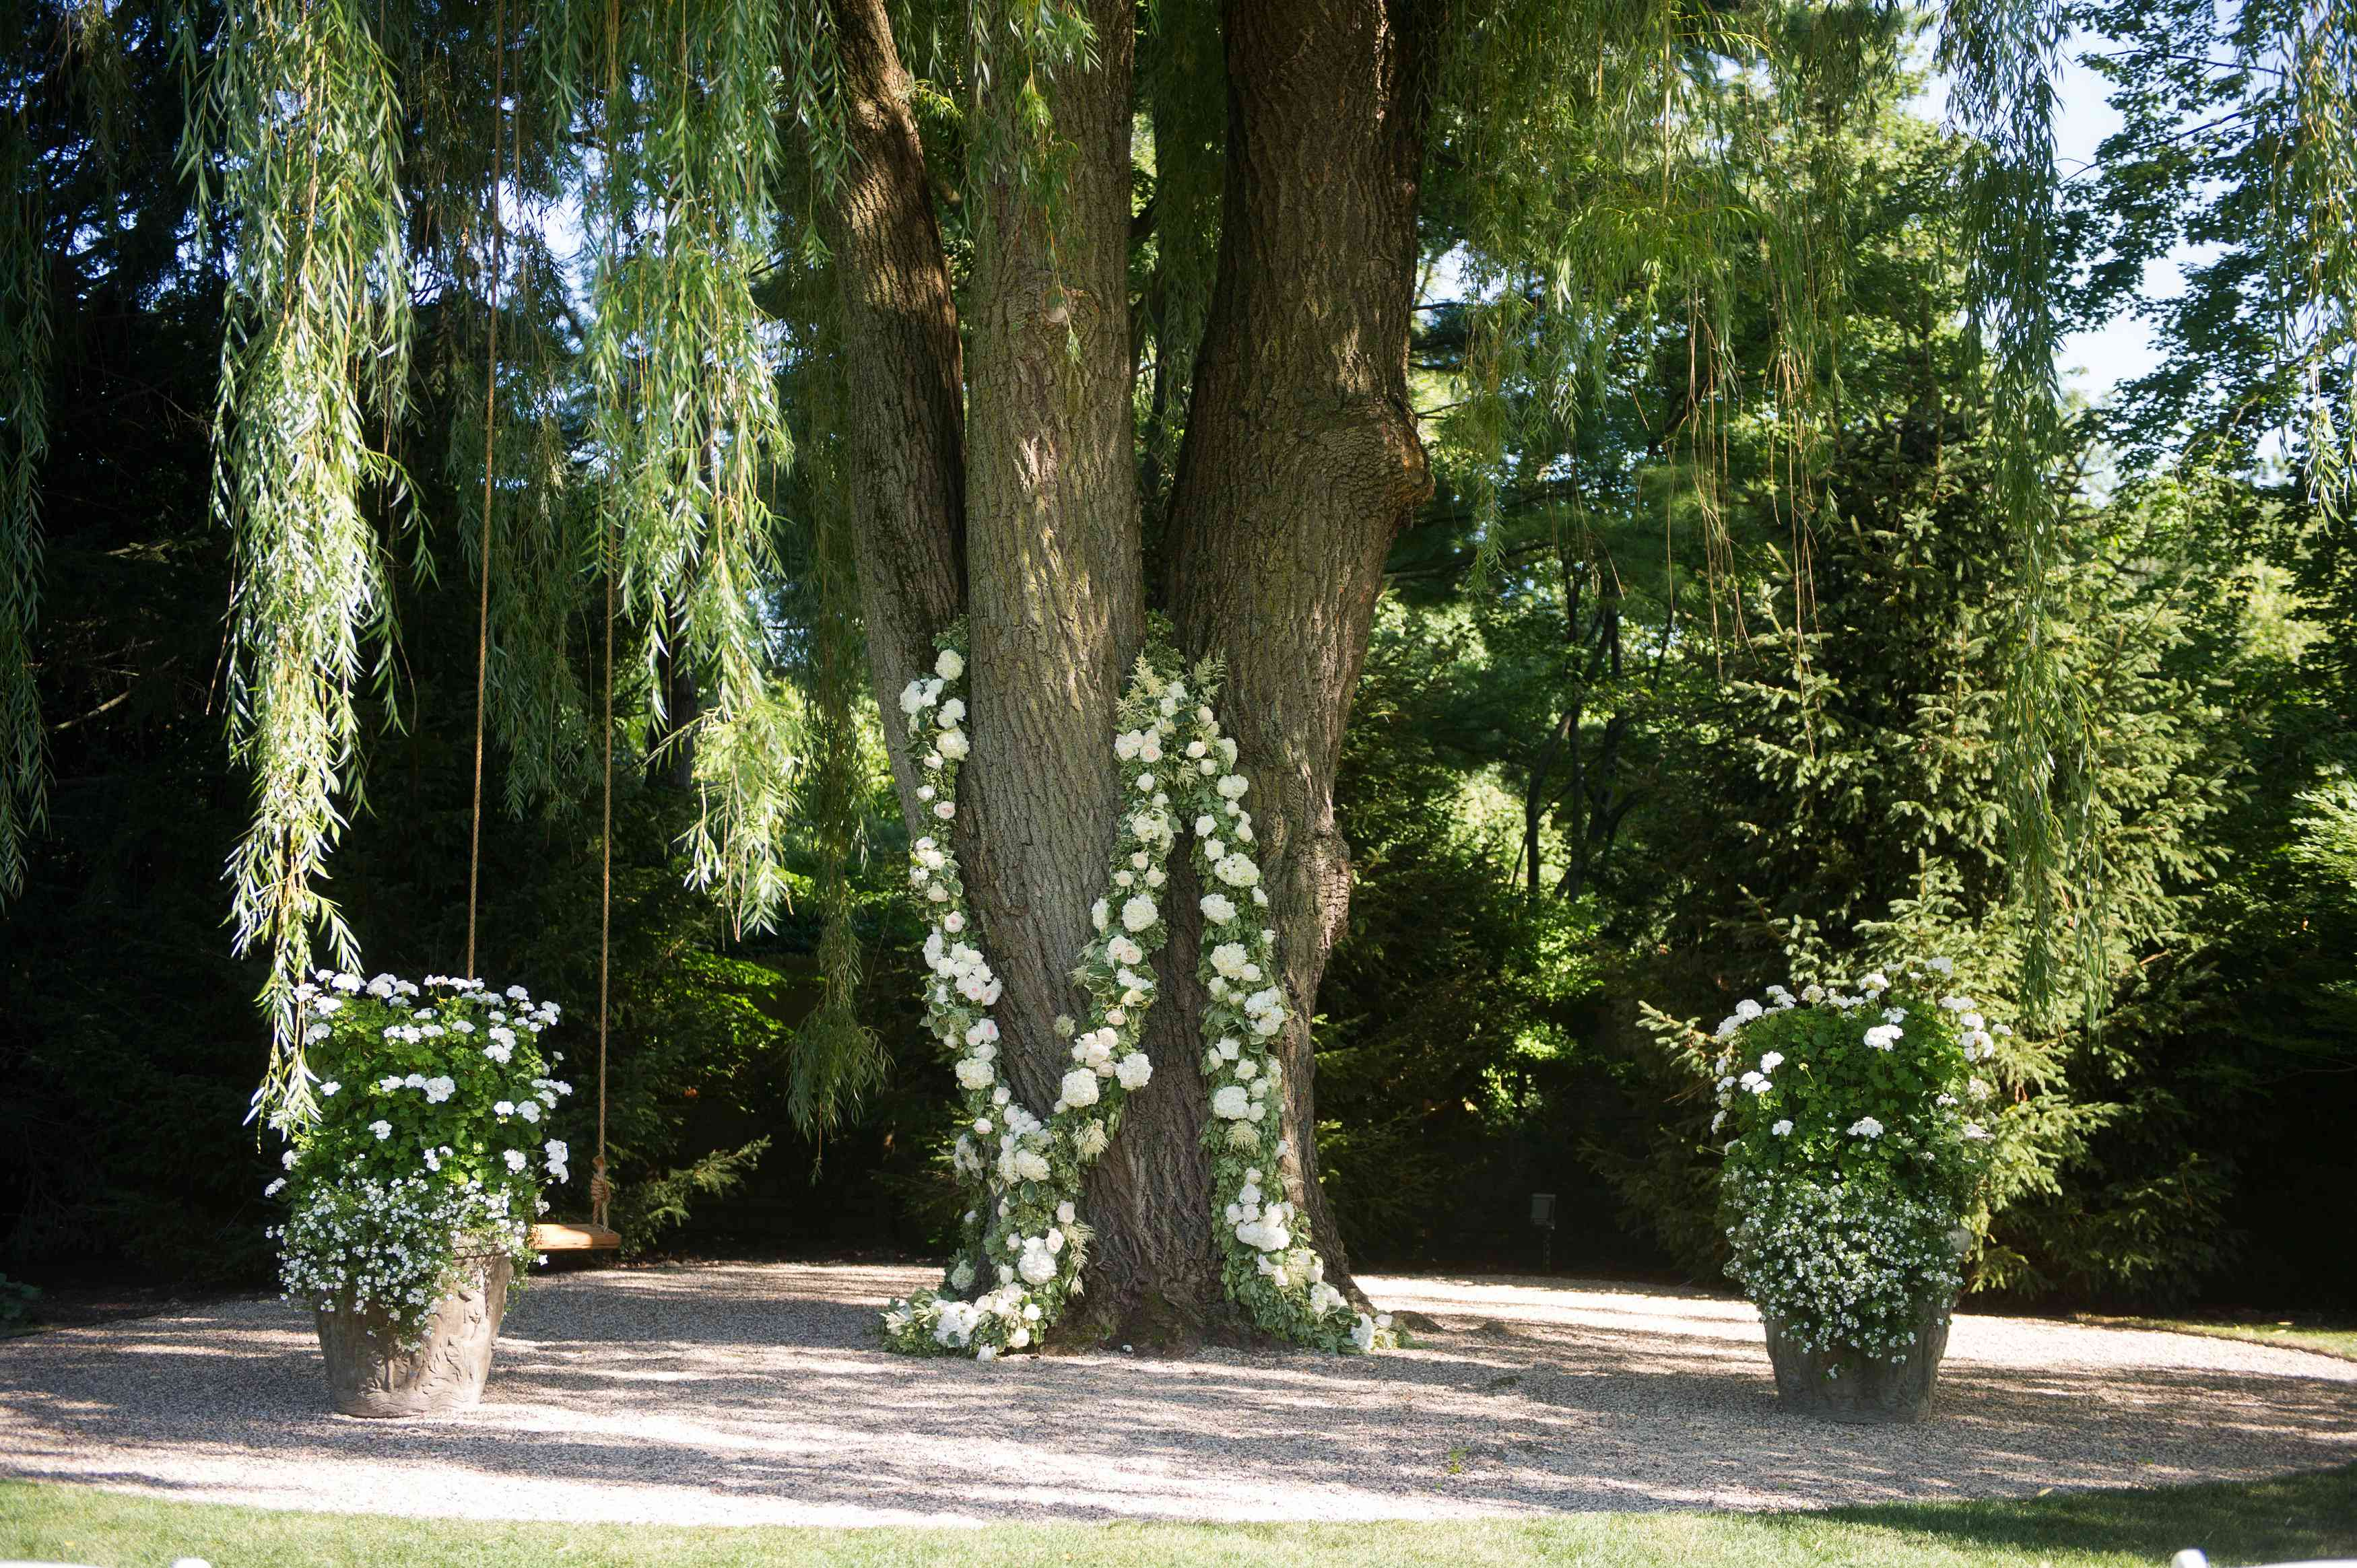 A willow tree with floral arrangements